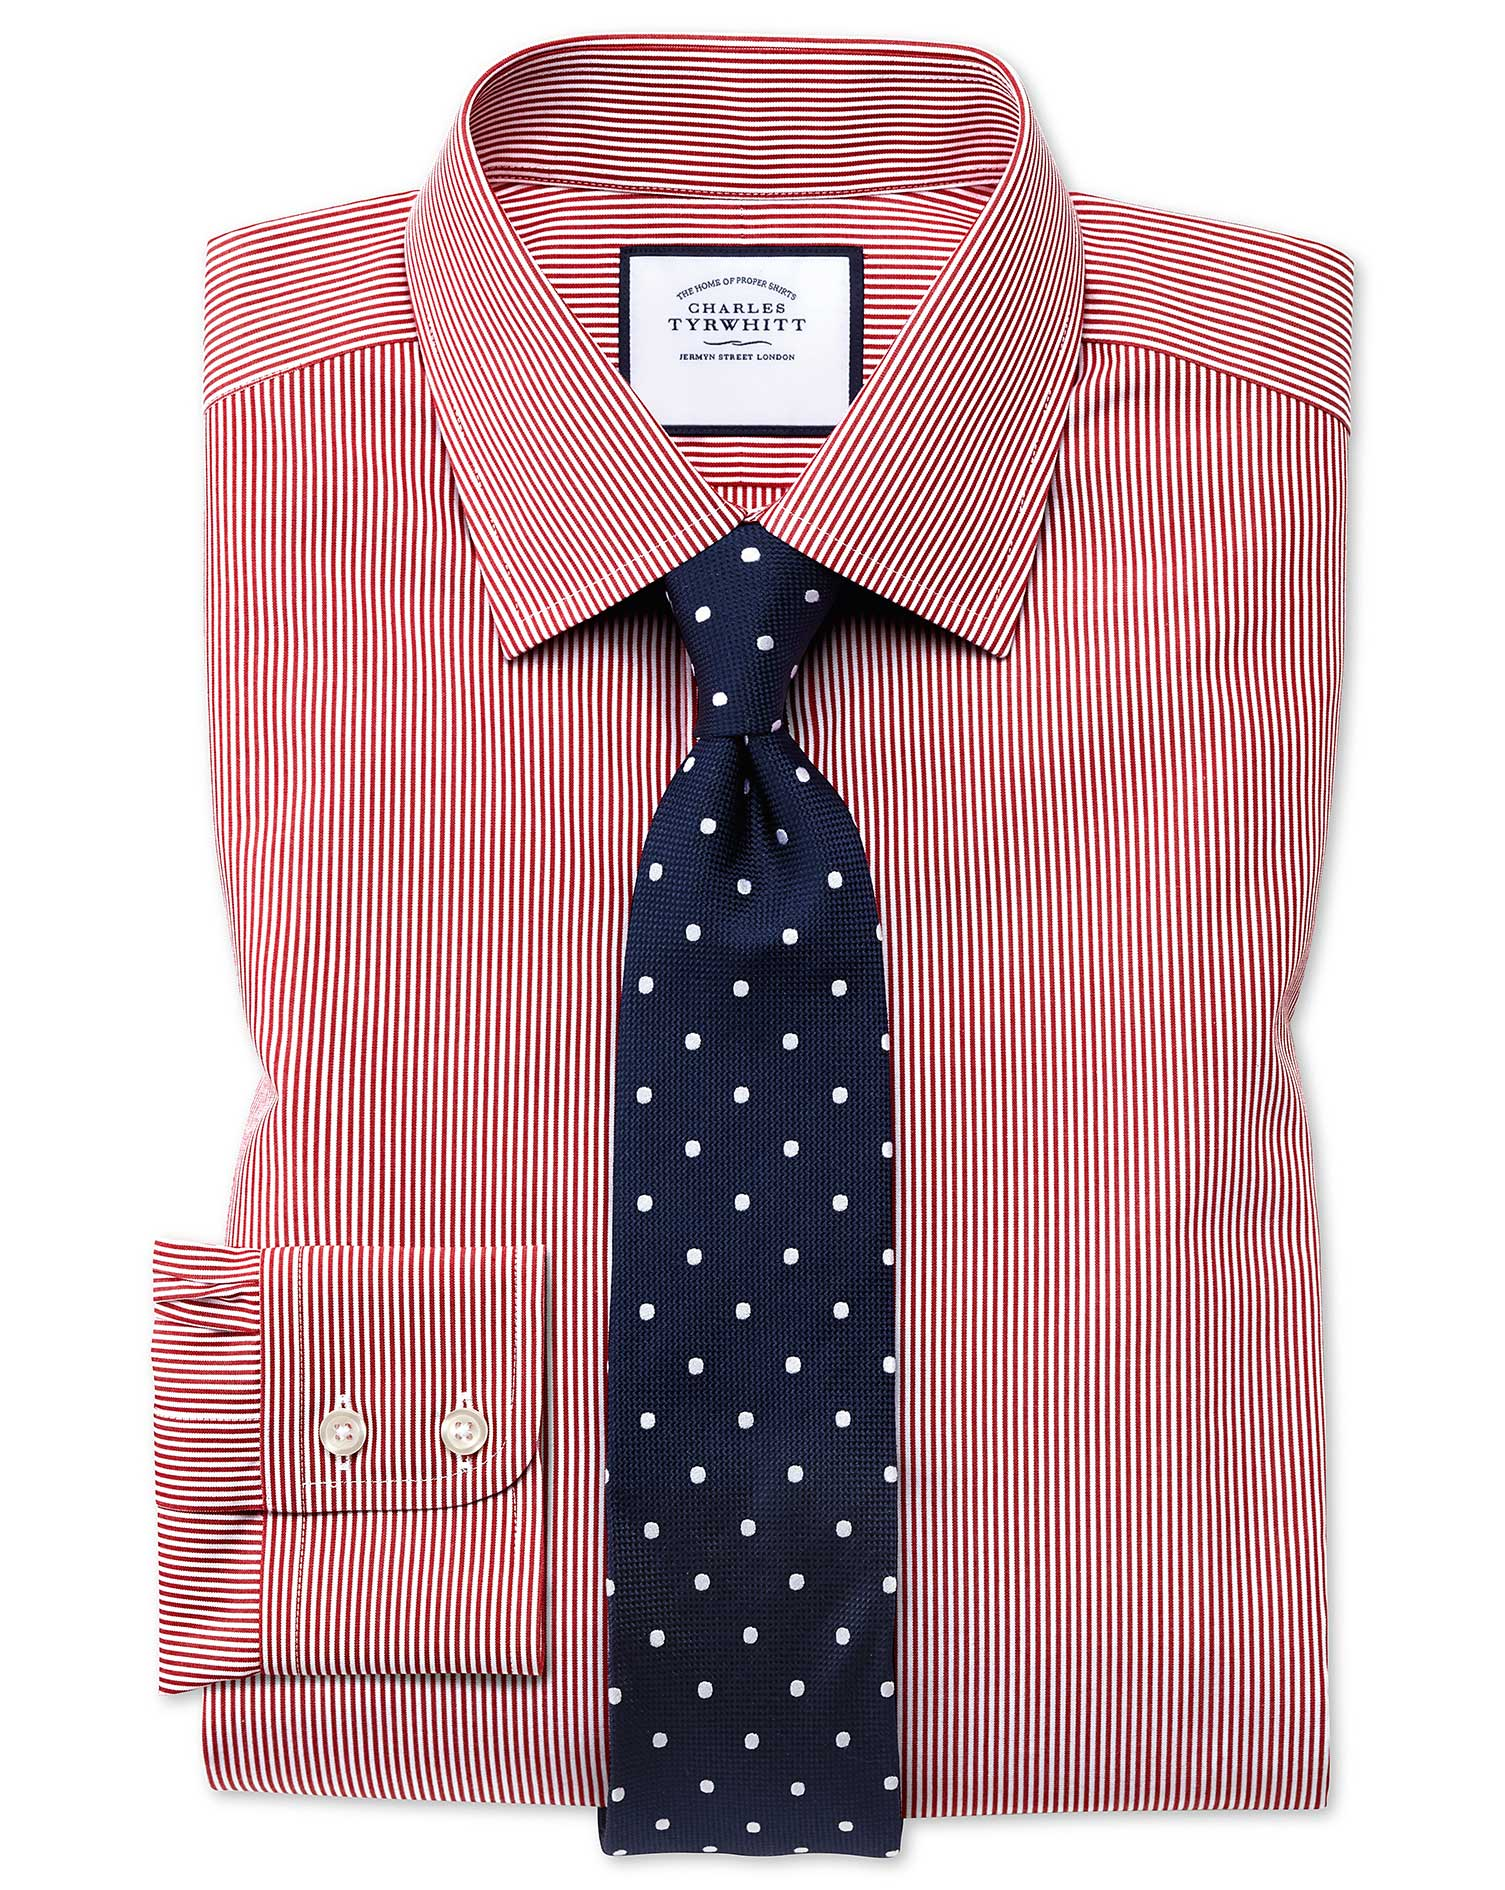 Classic Fit Non-Iron Bengal Stripe Red Cotton Formal Shirt Single Cuff Size 16/34 by Charles Tyrwhit